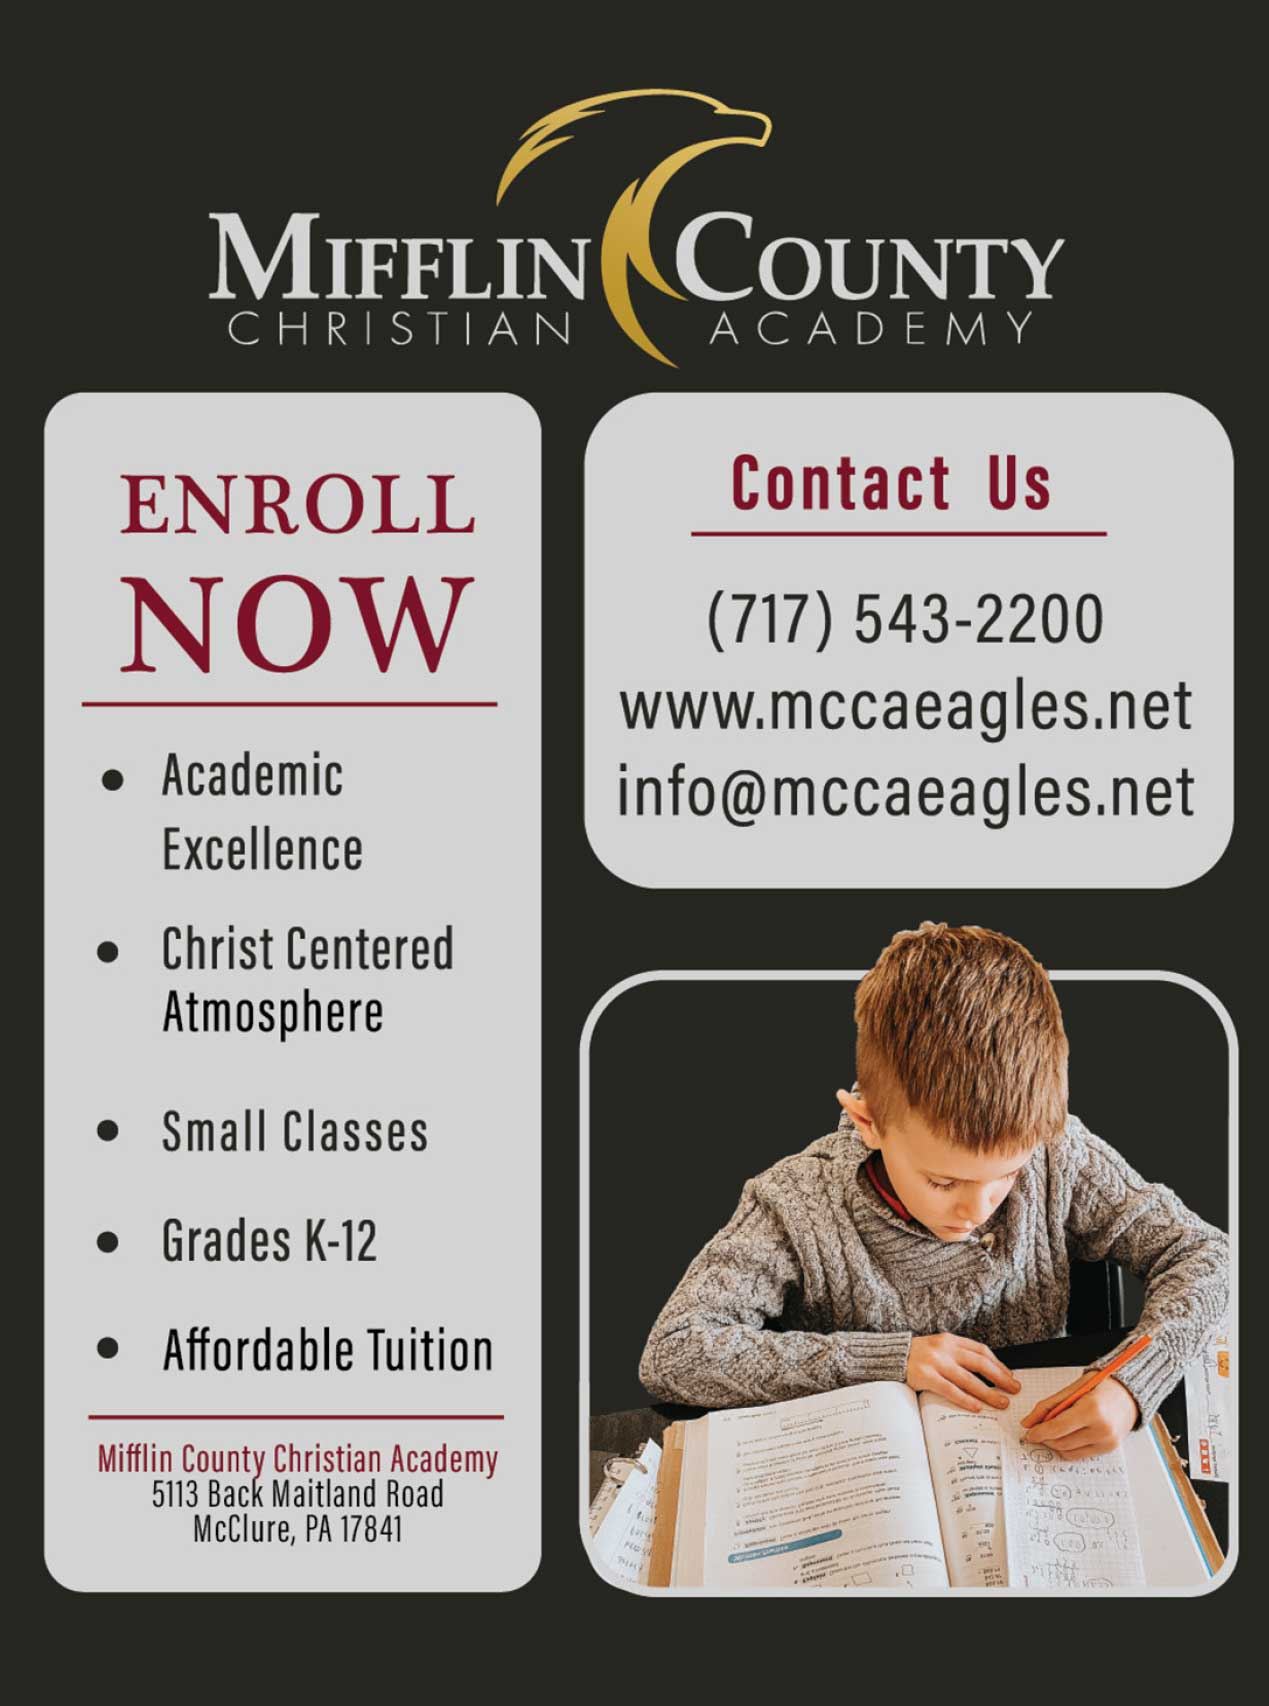 "<center>Mifflin County Christian Academy | <b><a href=""http://mccaeagles.net"" target=""_blank"" rel=""noopener noreferrer"">CLICK HERE to view the website</a></b></center>"